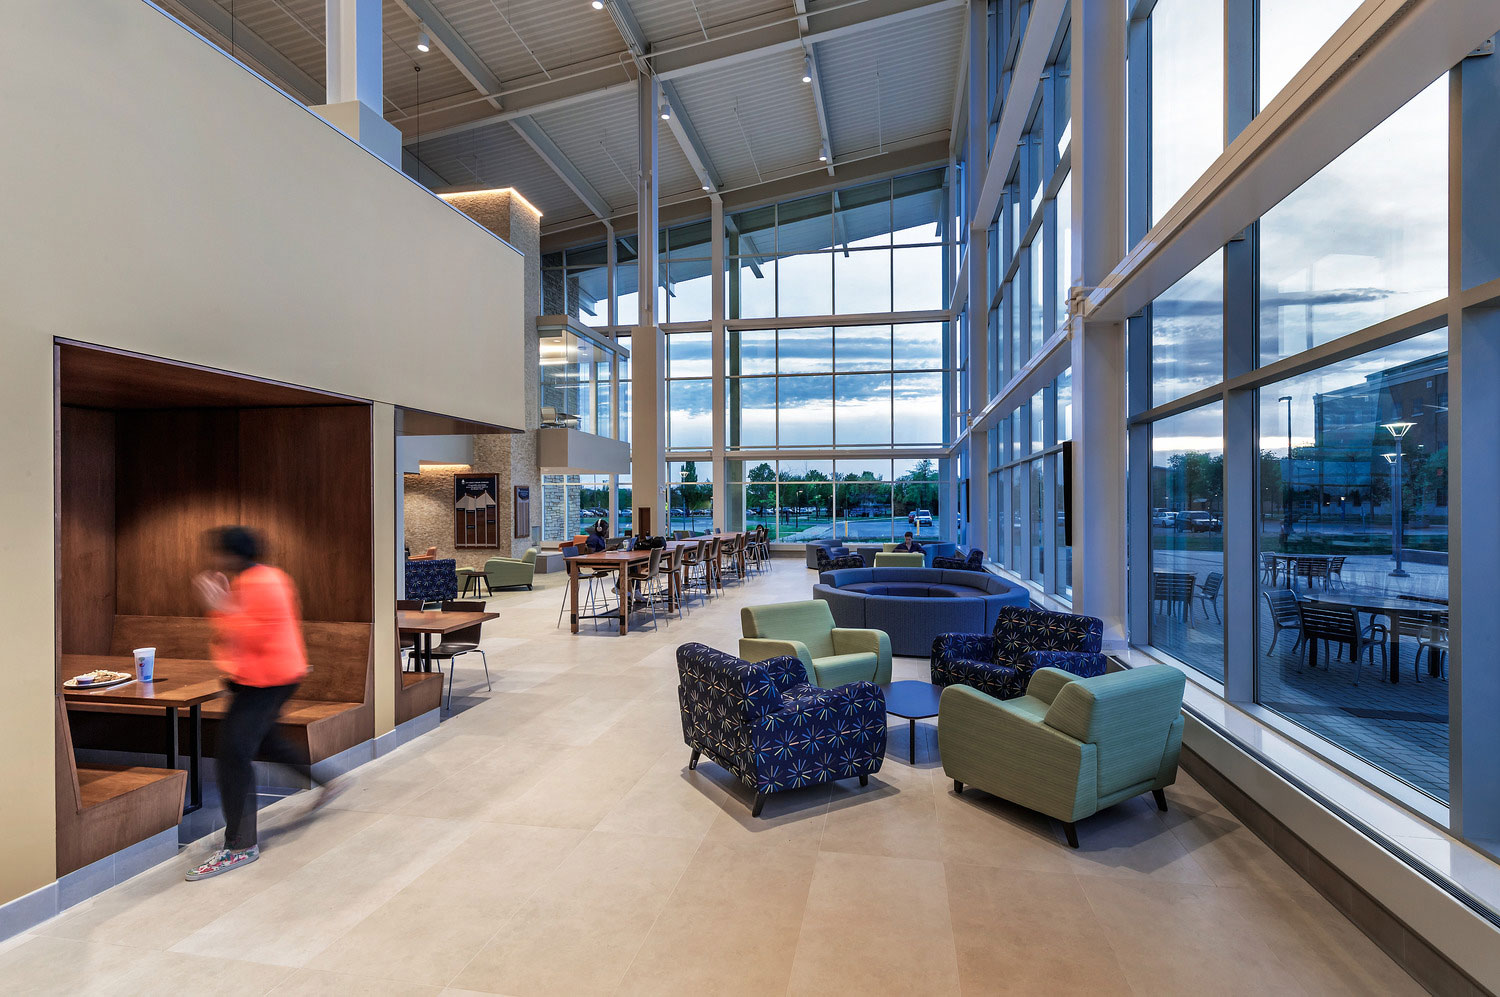 The lounge areas feature a variety of scales and textures, which makes it a comfortable place for students. Photo courtesy of Dewberry. Mark Ballogg, photographer.